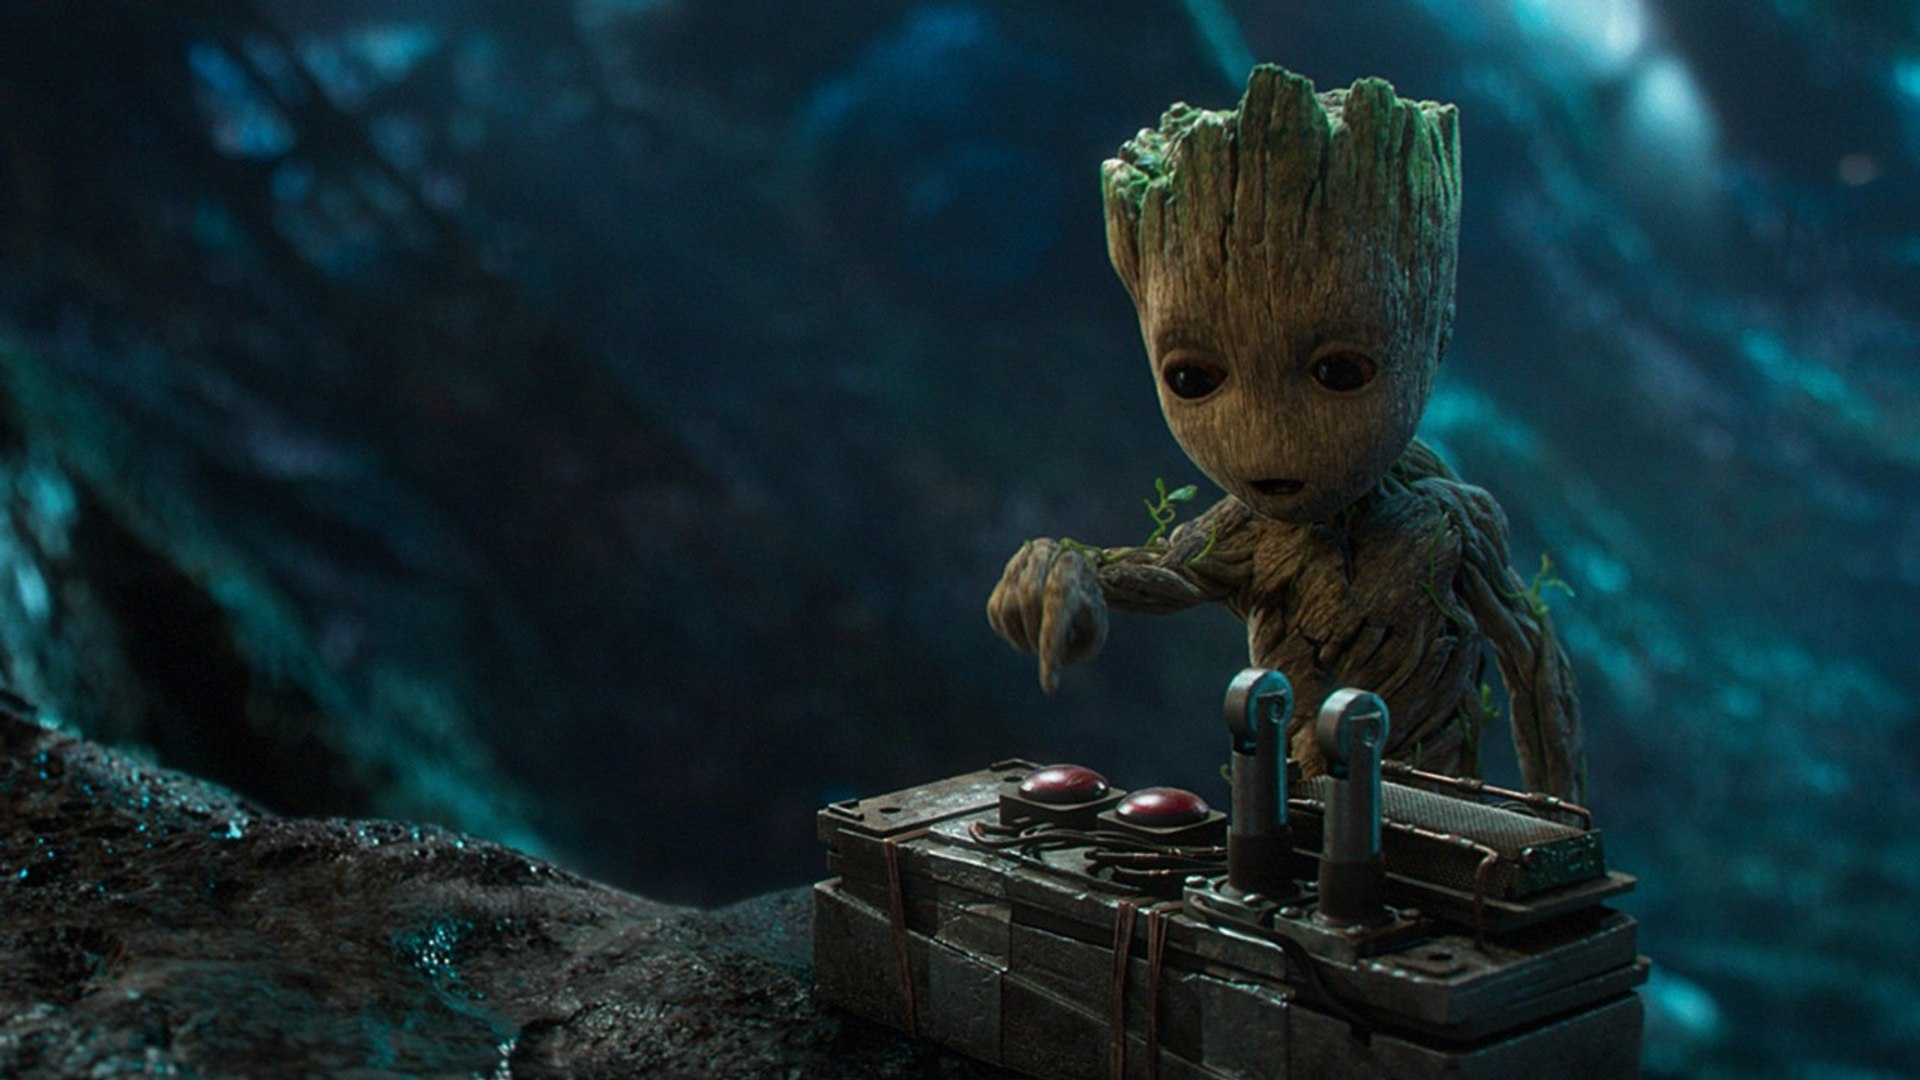 Guardians Vol. 2: Baby Groot Surprises Fans On Hollywood Boulevard